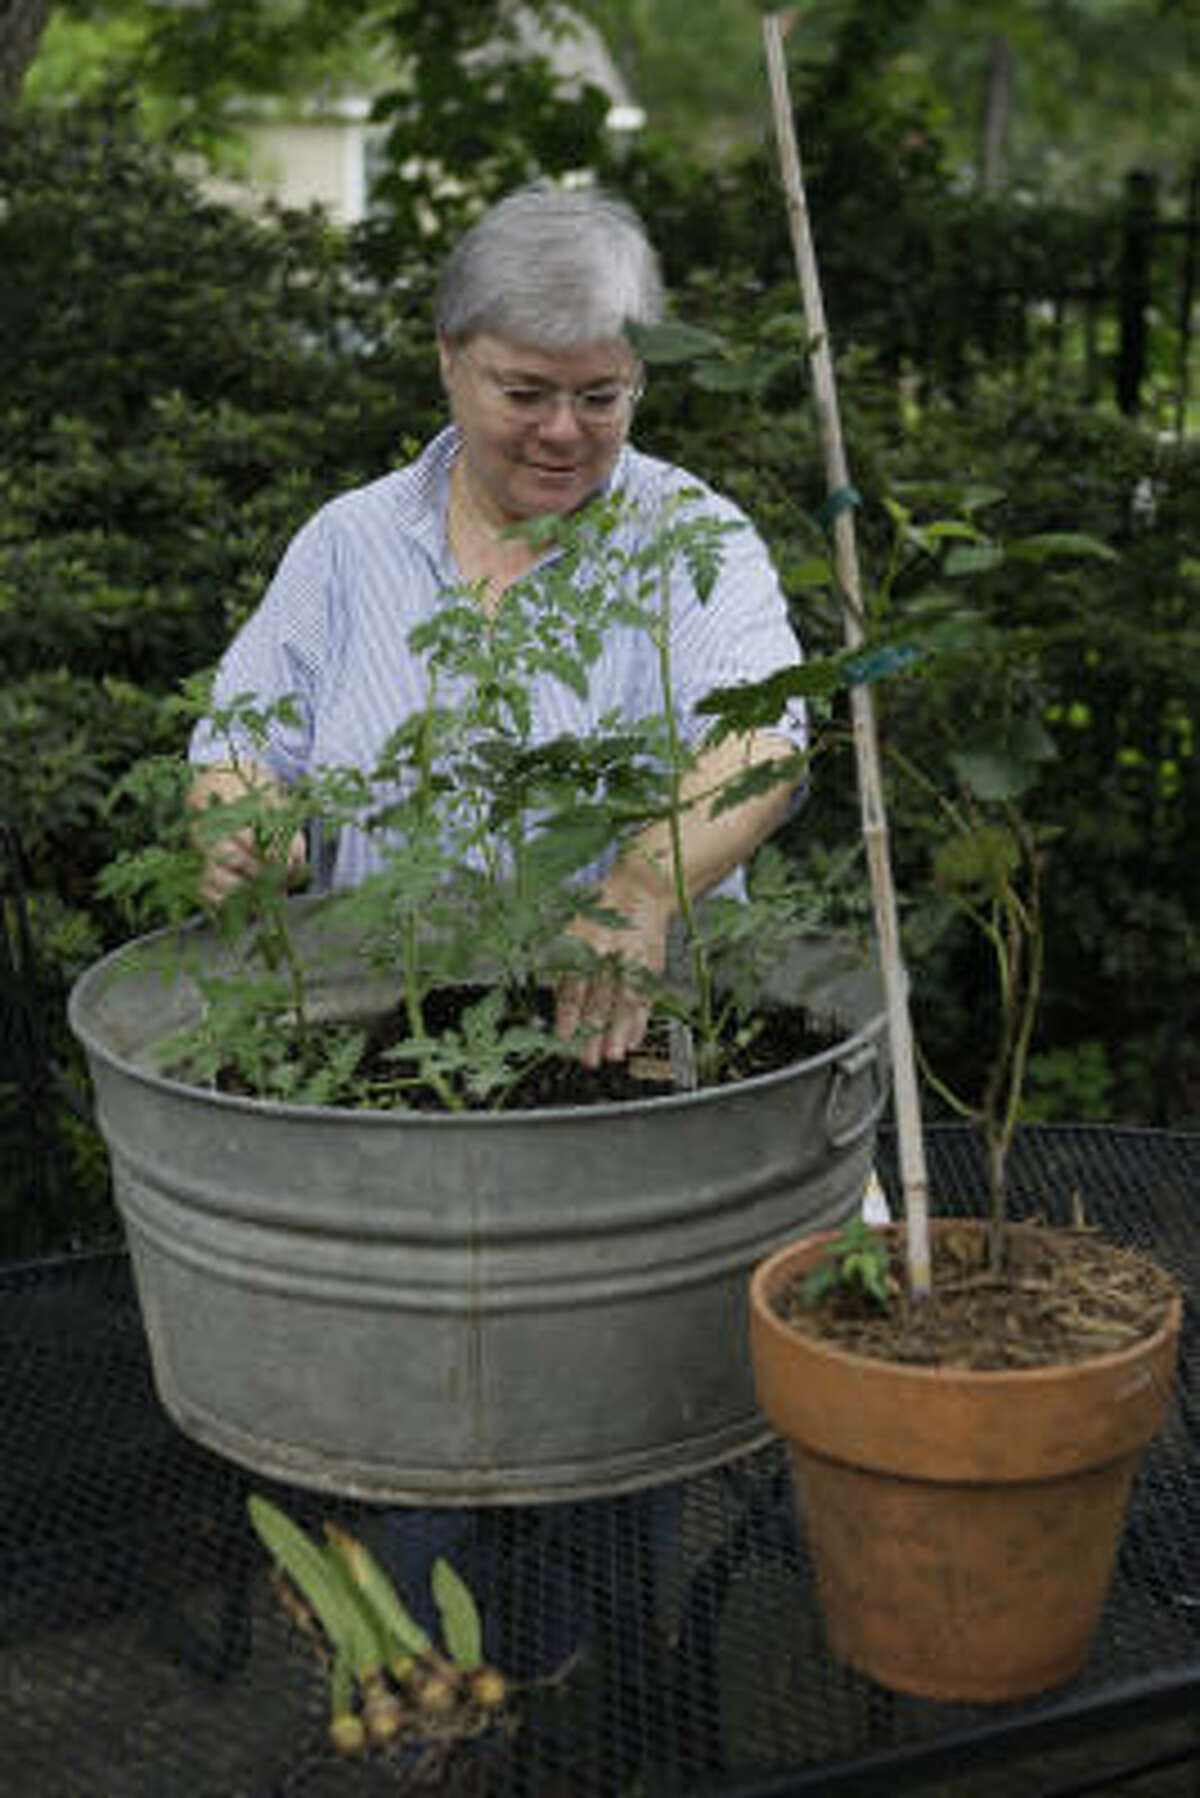 Carol Smith tends to a tub of tomato plants in her Garden Oaks yard. On the table are also a pot of blackberries and her father's amaryllis bulbs.